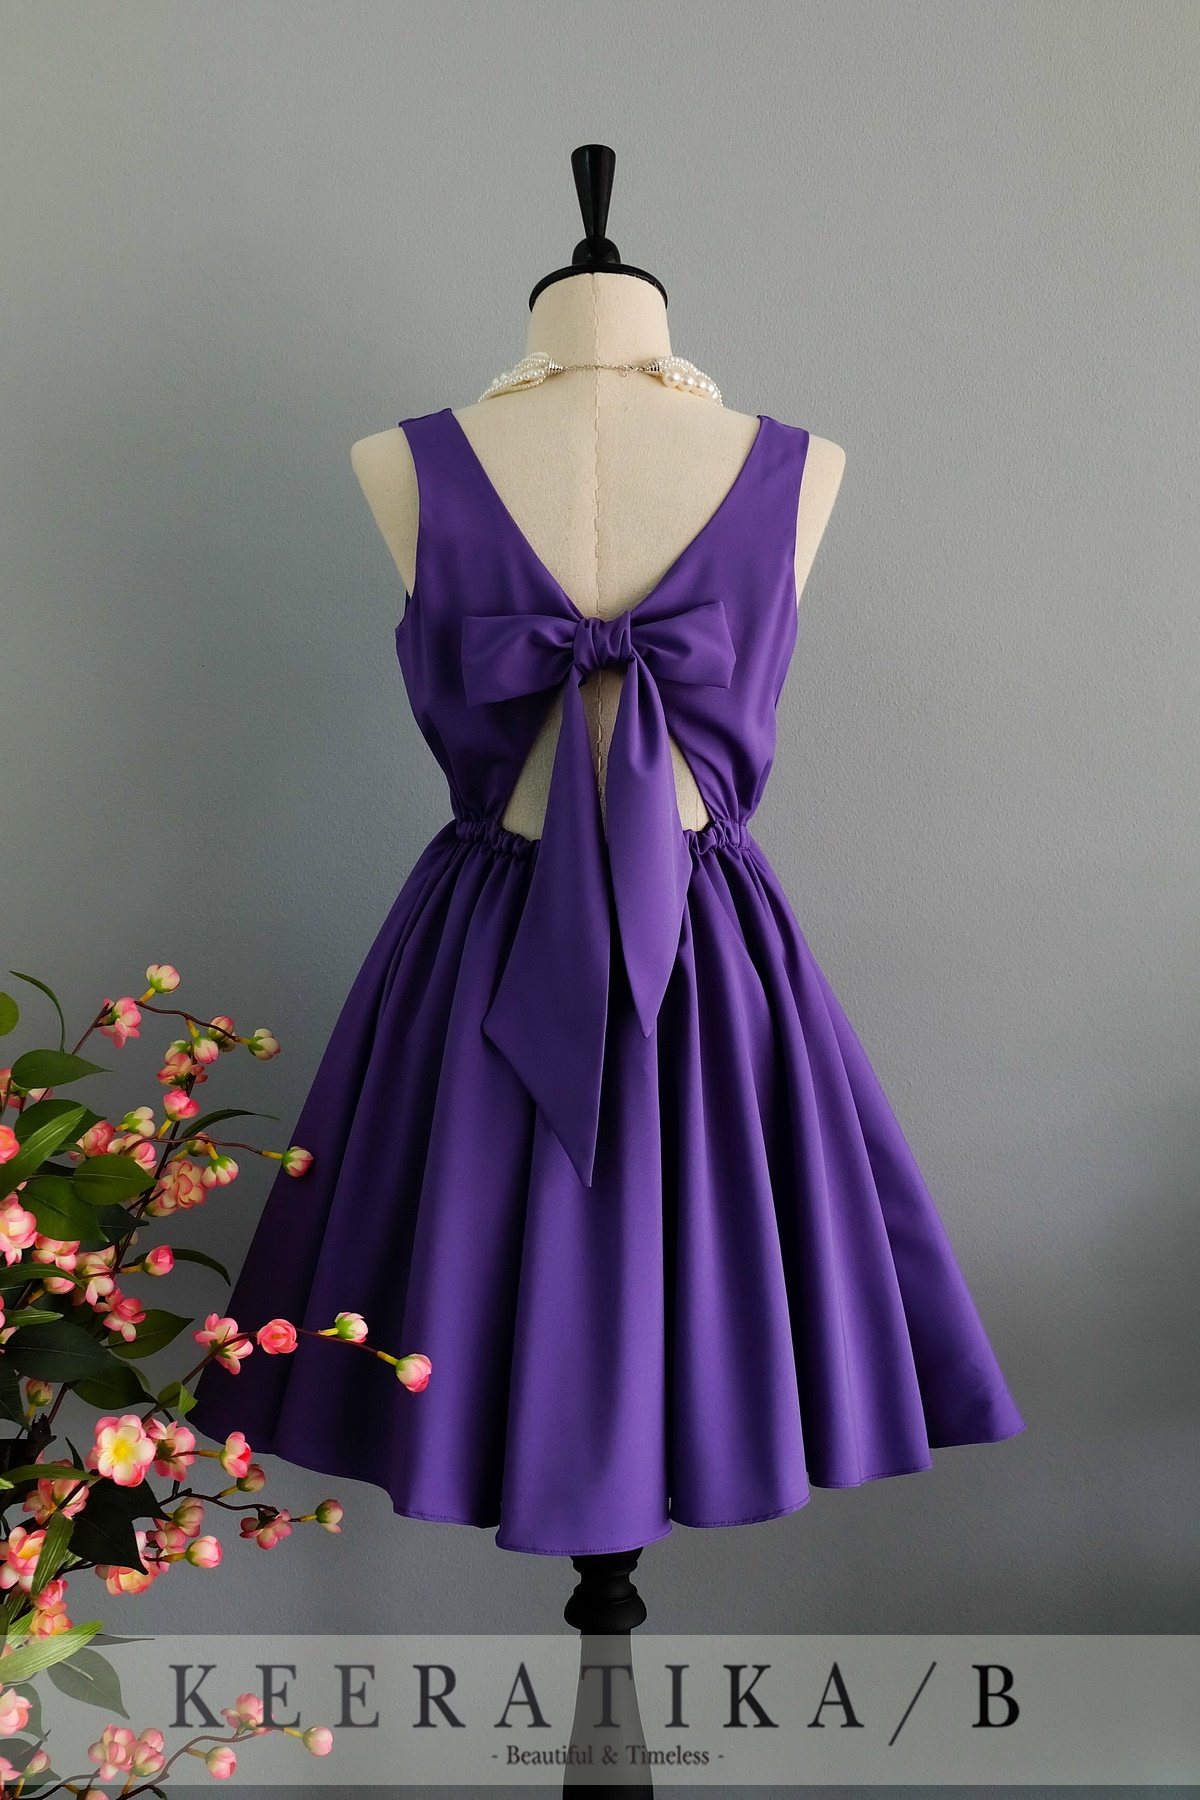 Purple Sleeveless Square Neck Short Skater Dress Featuring Bow Accent Cutout Back, Homecoming Dress, Bridesmaid Dress